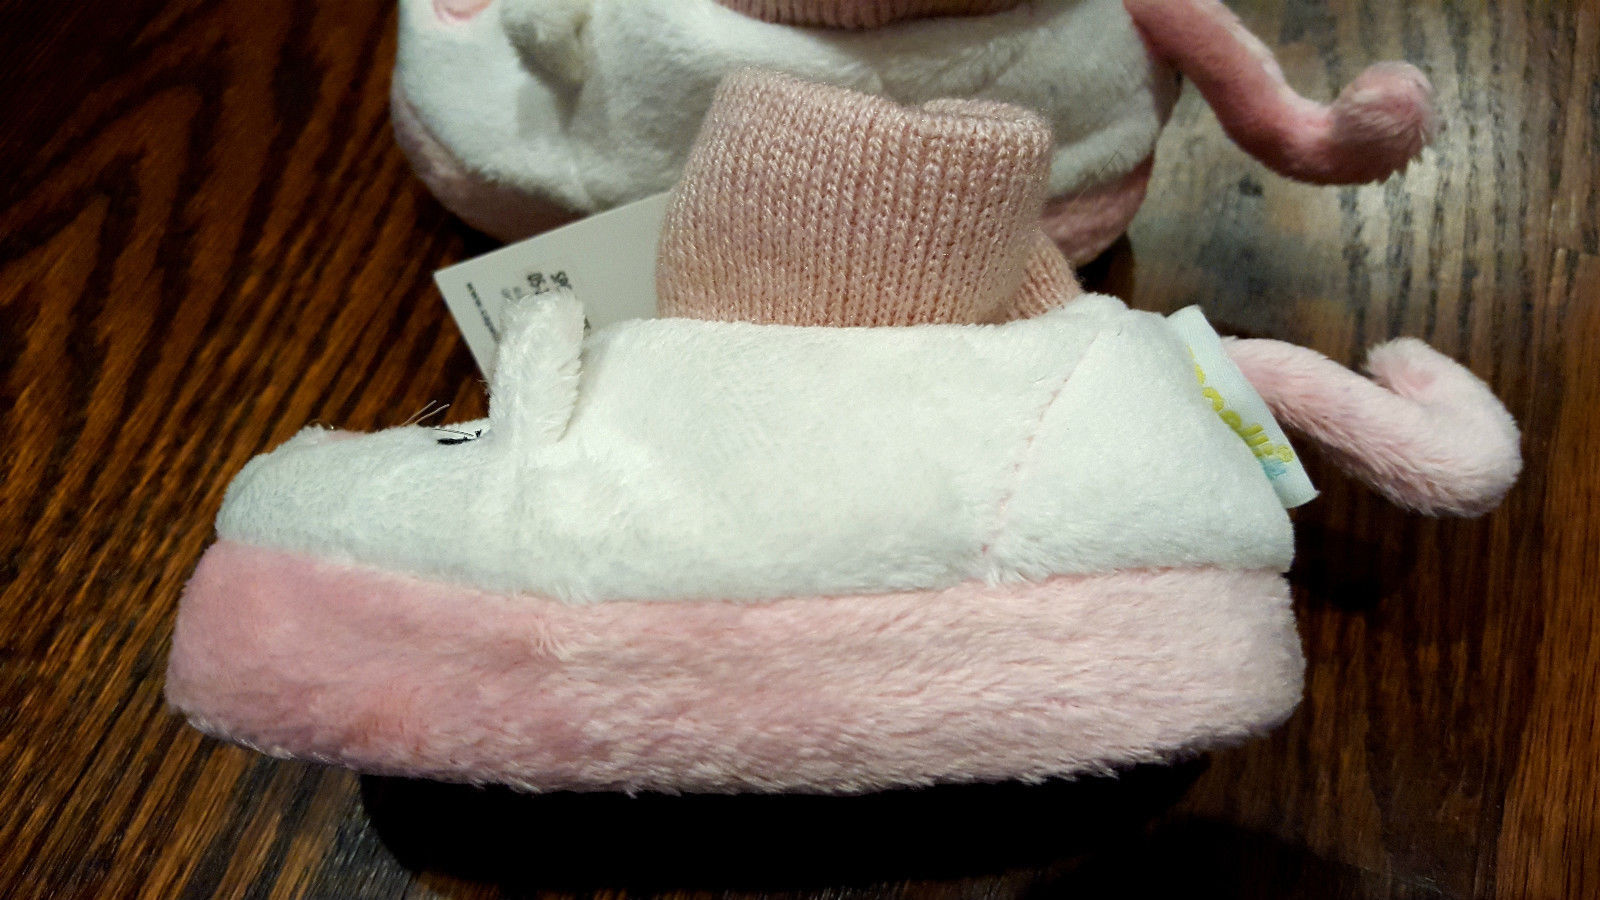 NWT Girl's Size 4-5 or 6-7 Capelli Kids NY White/ PInk Furry Kitten Slippers